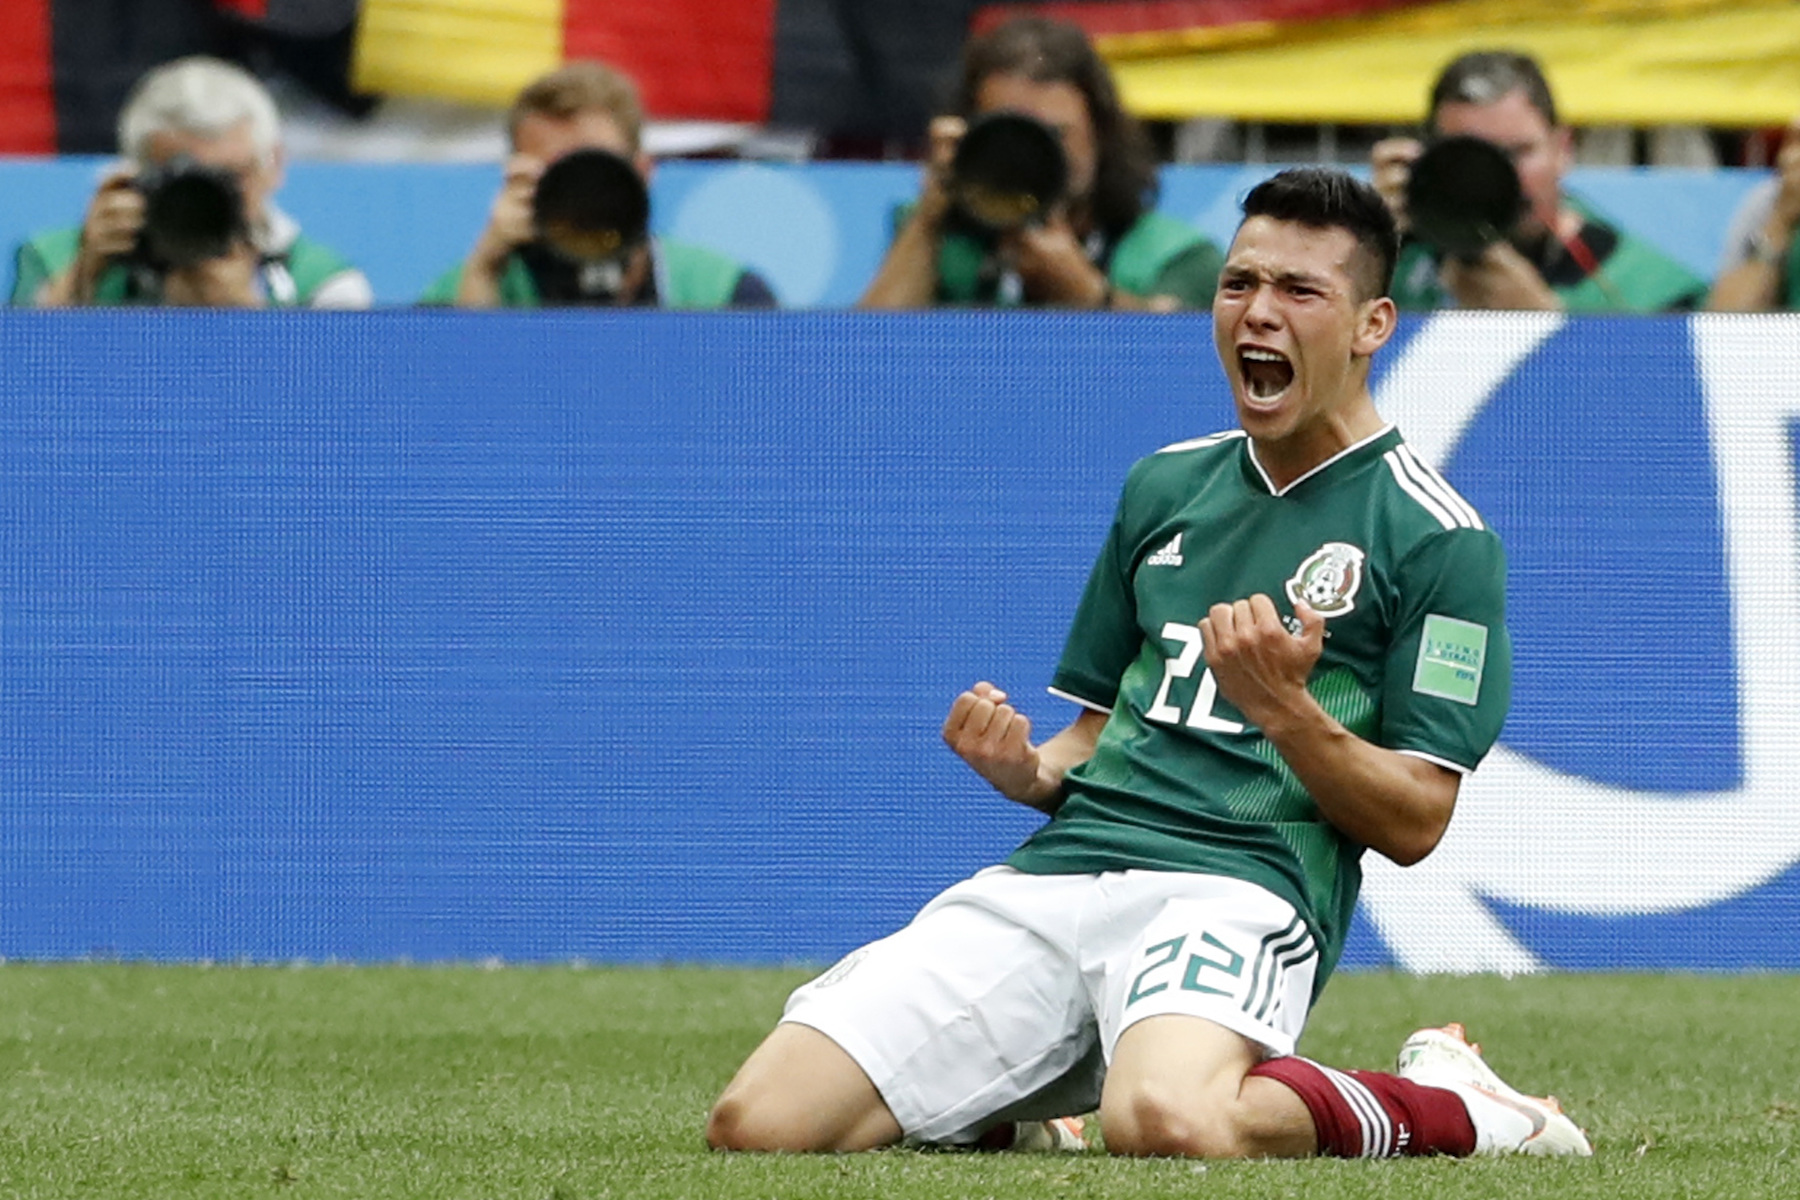 "<div class=""meta image-caption""><div class=""origin-logo origin-image ap""><span>AP</span></div><span class=""caption-text"">Mexico's Hirving Lozano, celebrates scoring his side's opening goal during the group F match between Germany and Mexico at the 2018 soccer World Cup in the Luzhniki Stadium. (AP Photo/Antonio Calanni)</span></div>"